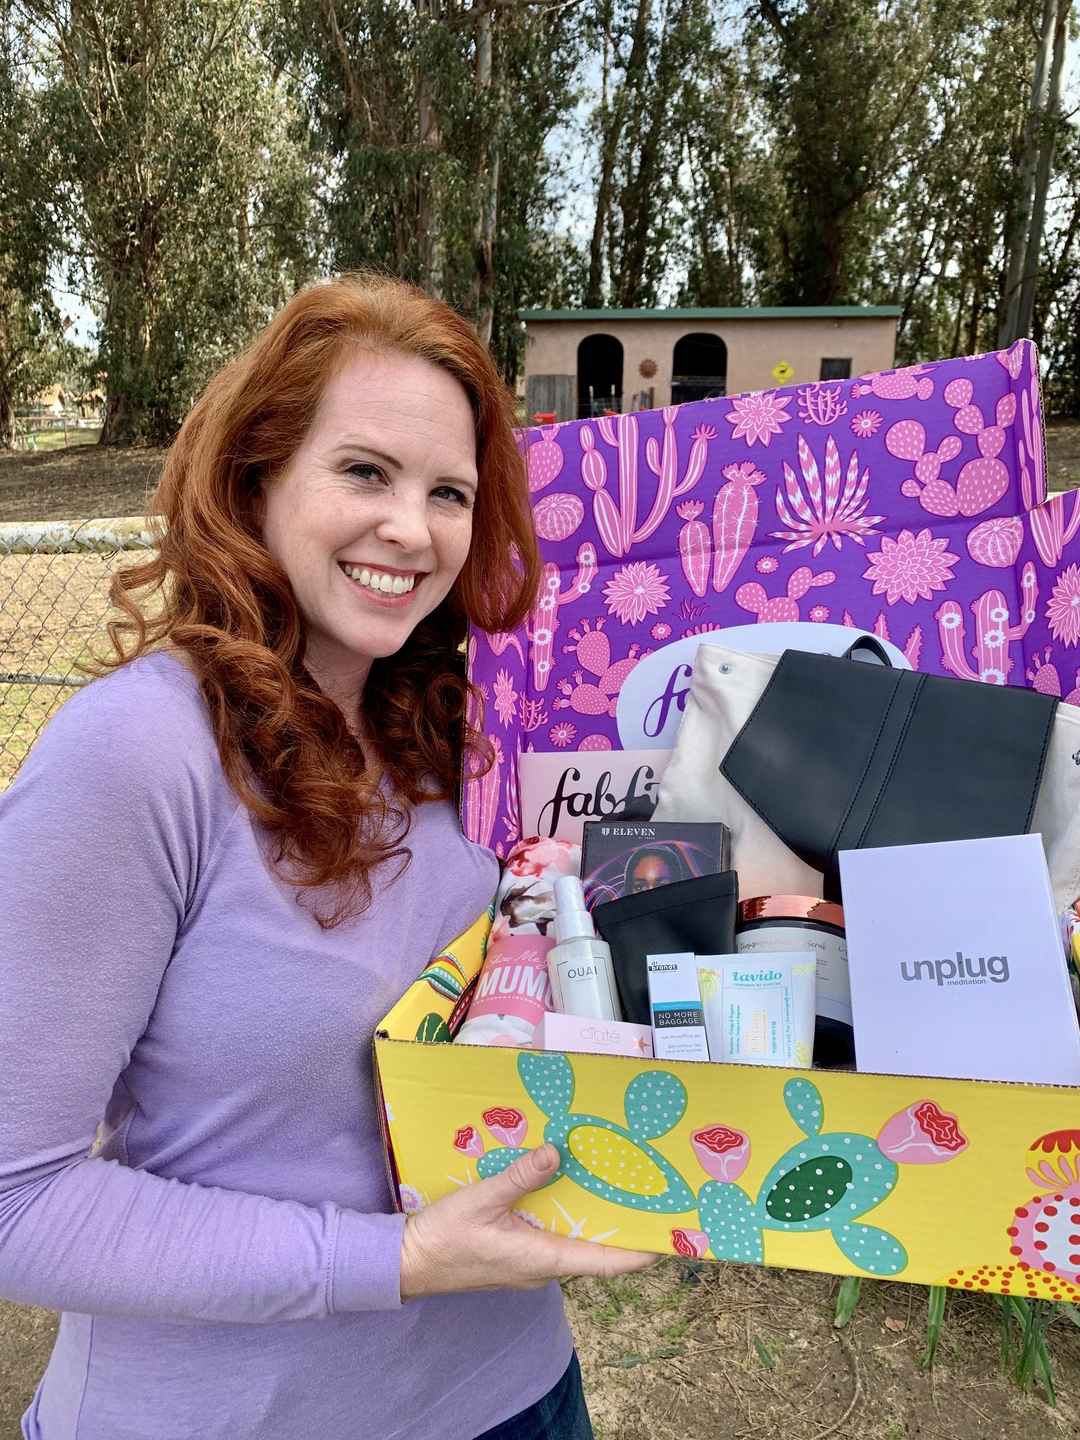 A woman holding a subscription box